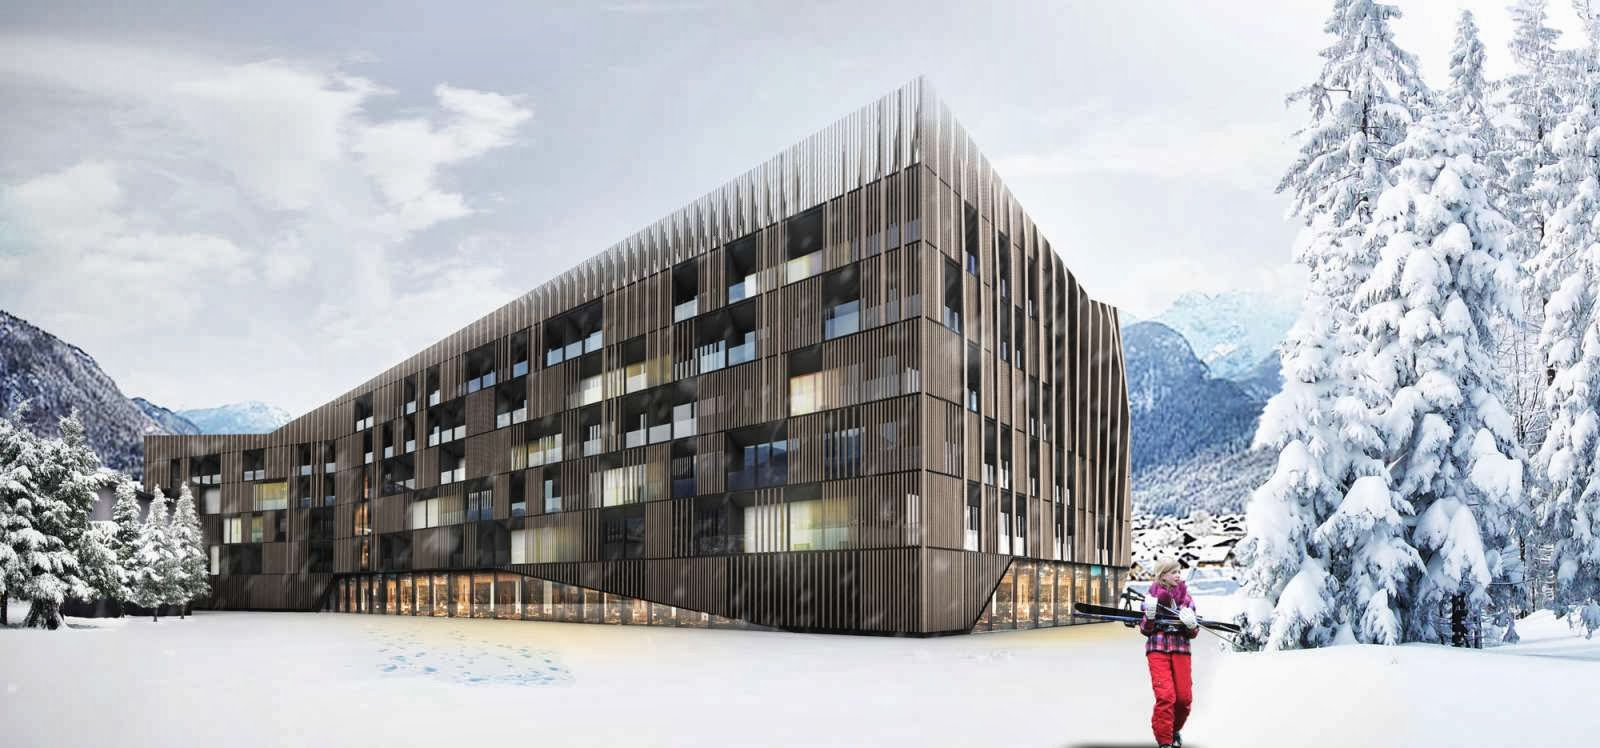 Lofer, Austria: Graft Wins Mountain Resort Competition